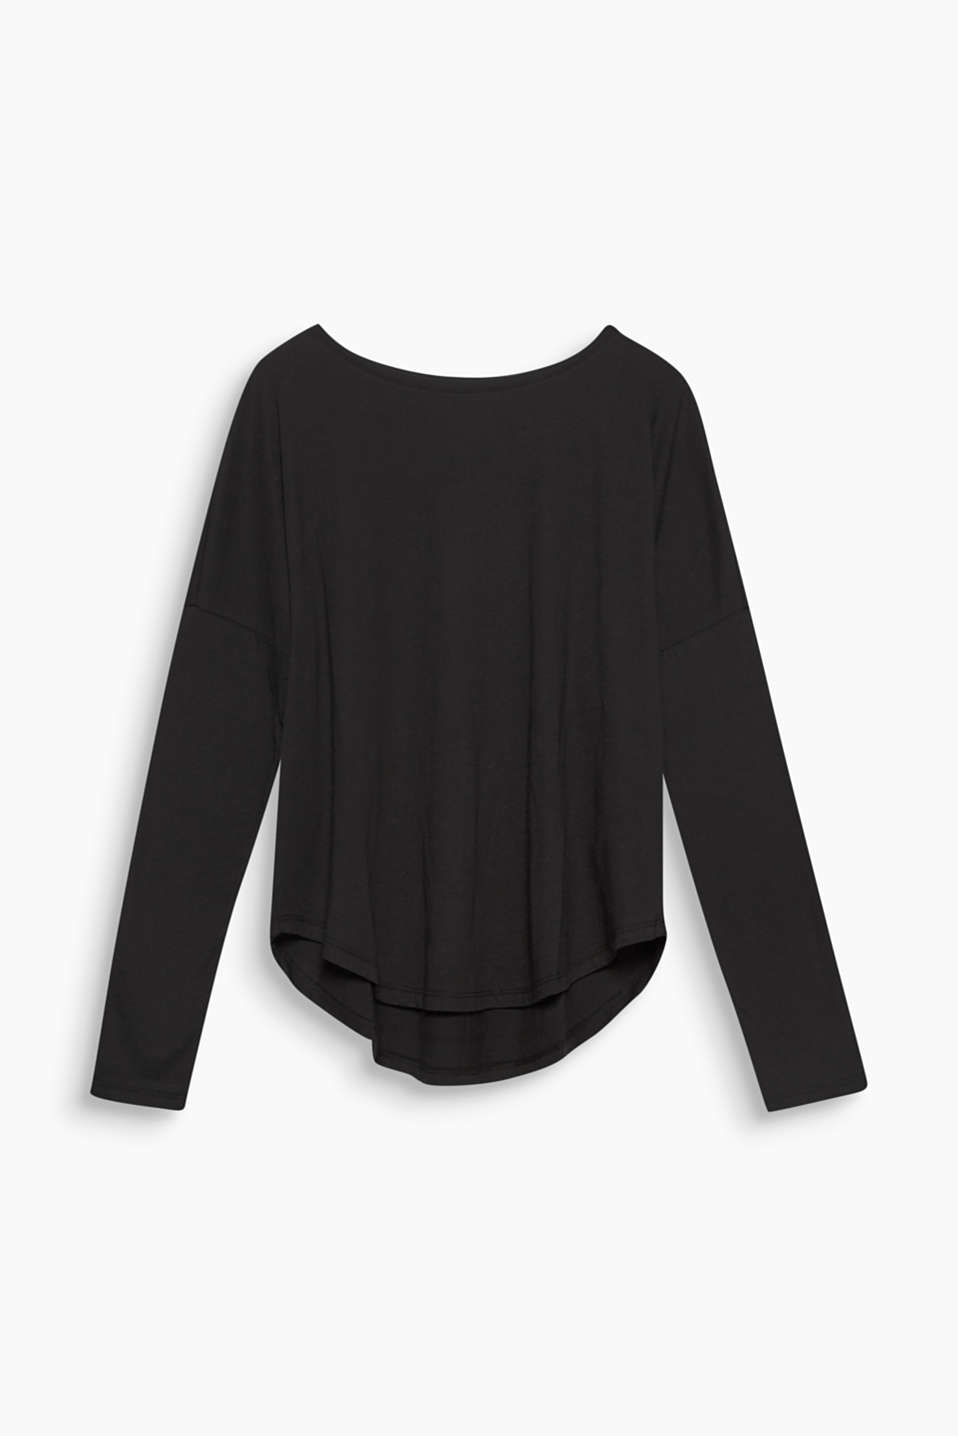 This versatile oversized long sleeve T-shirt made of organic cotton and linen looks cool and natural!